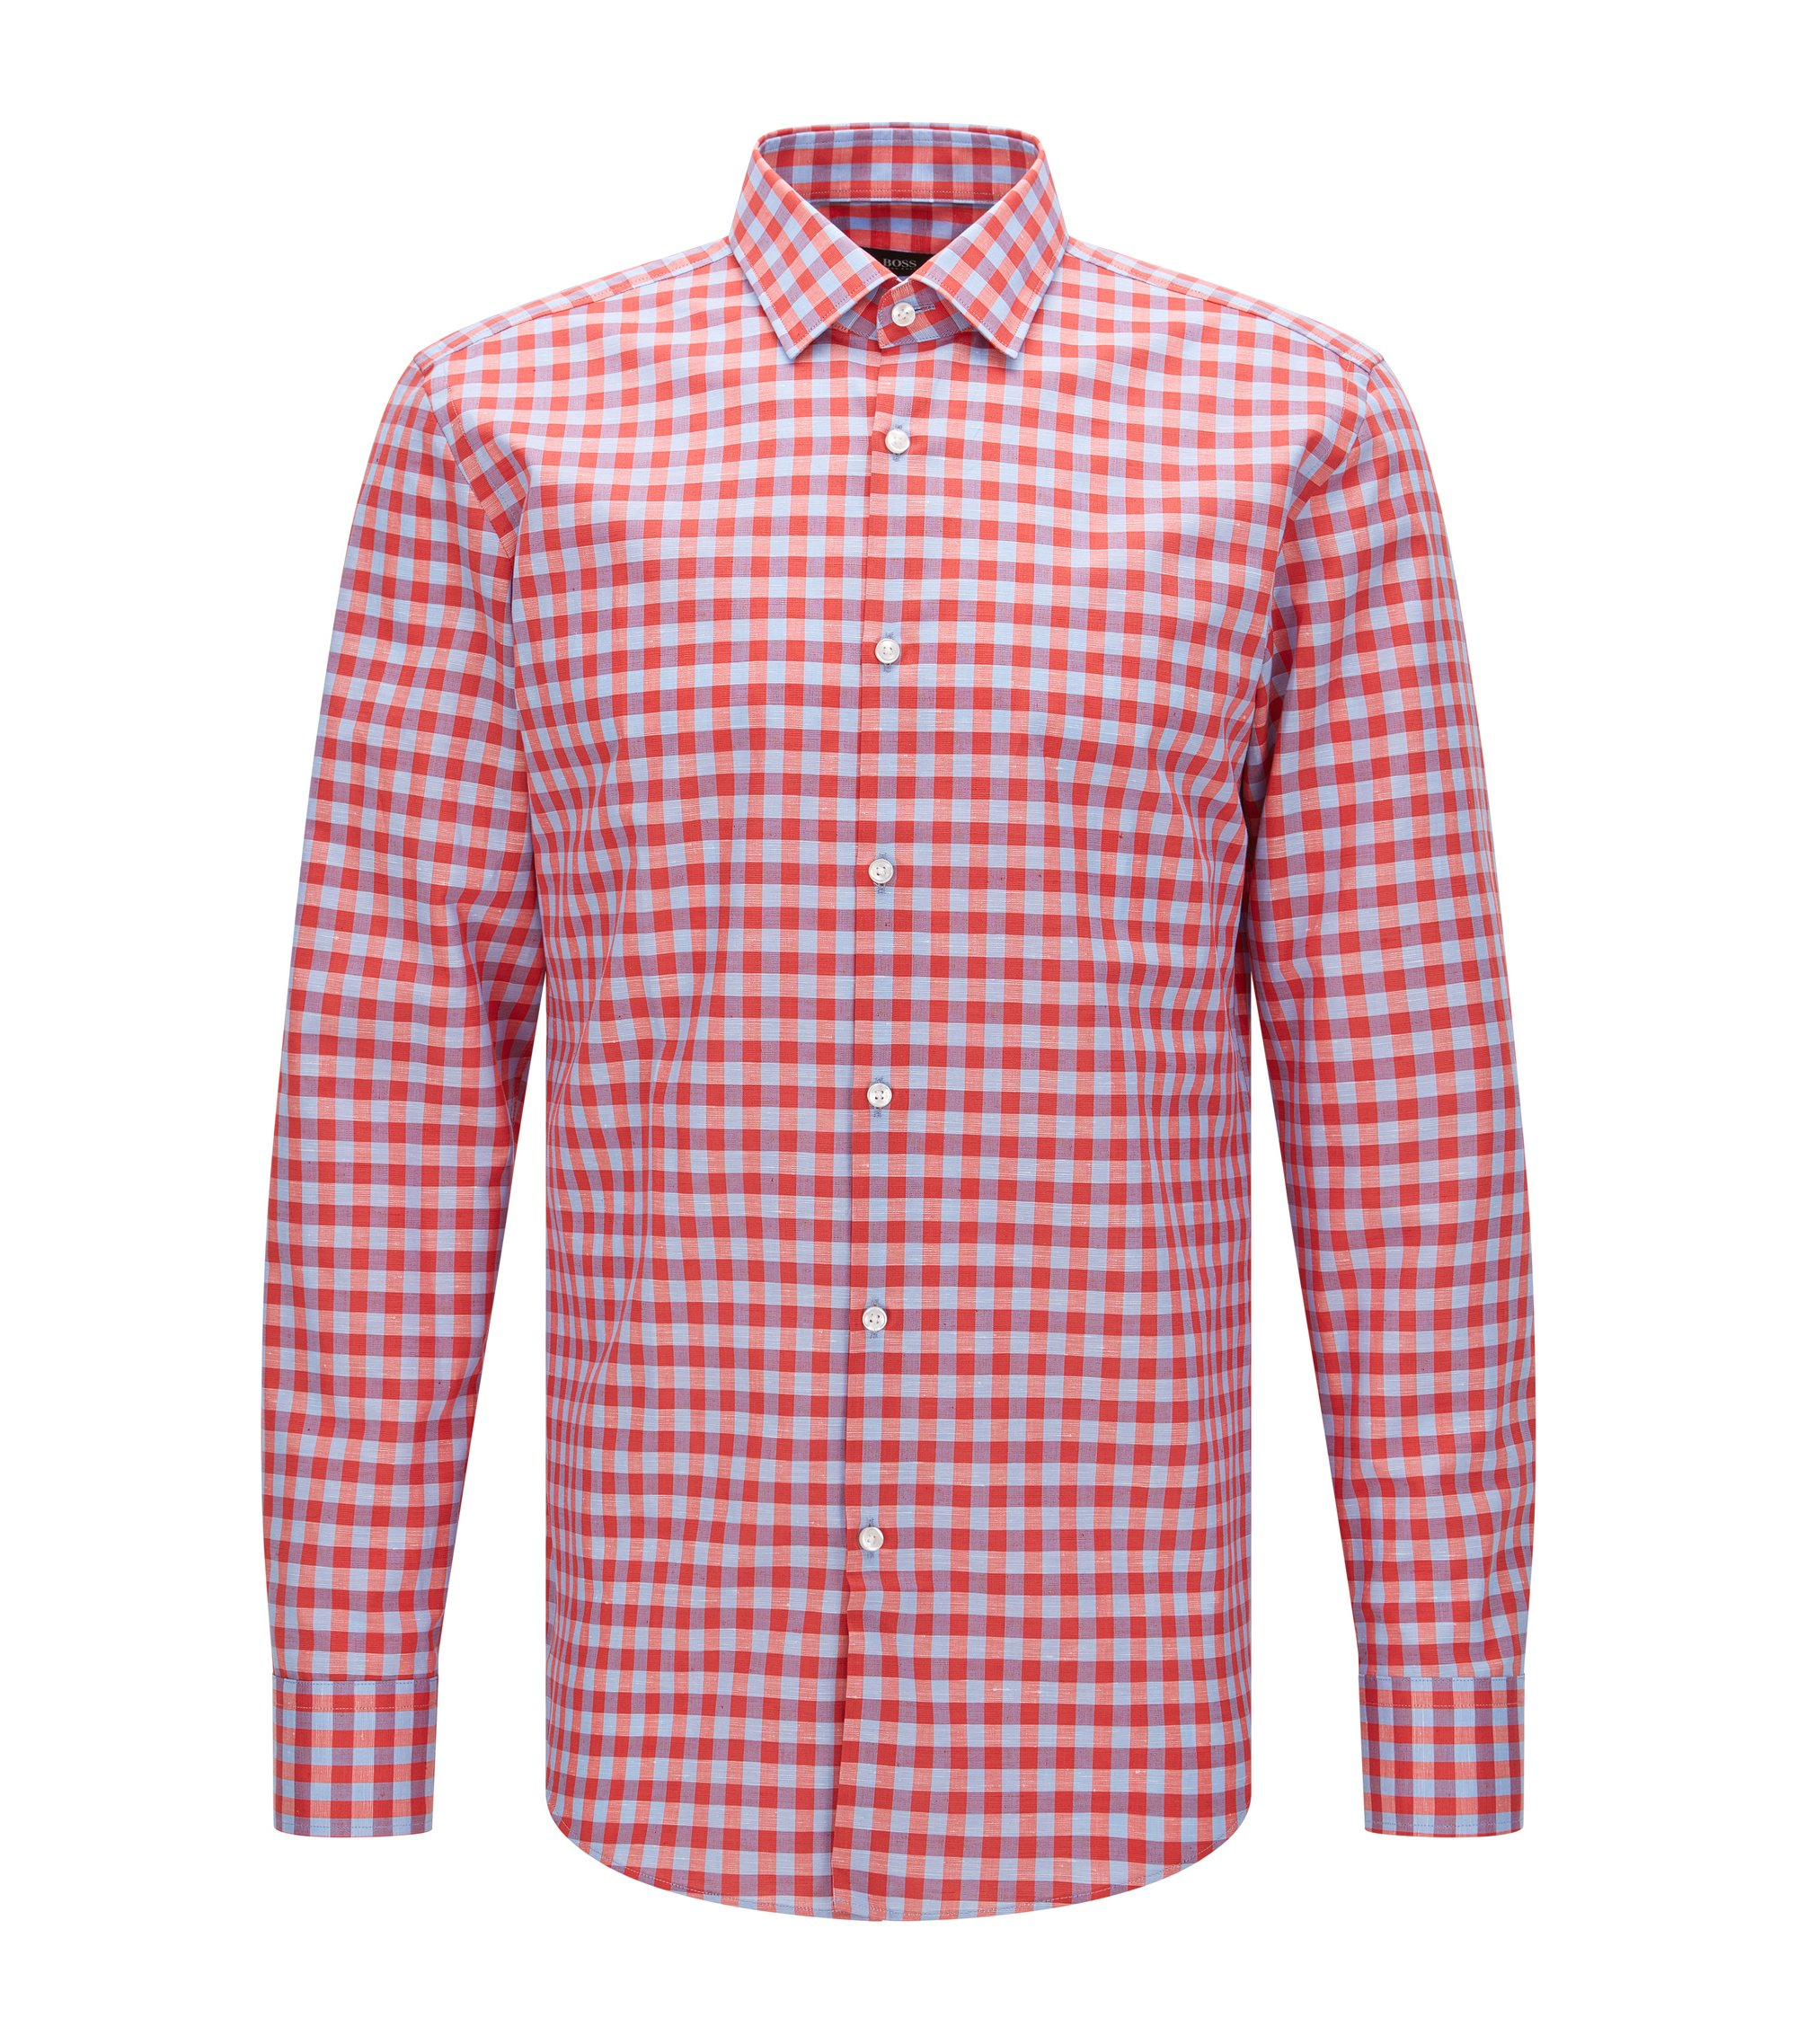 Gingham Italian Cotton Linen Dress Shirt, Slim Fit | Jenno, Red